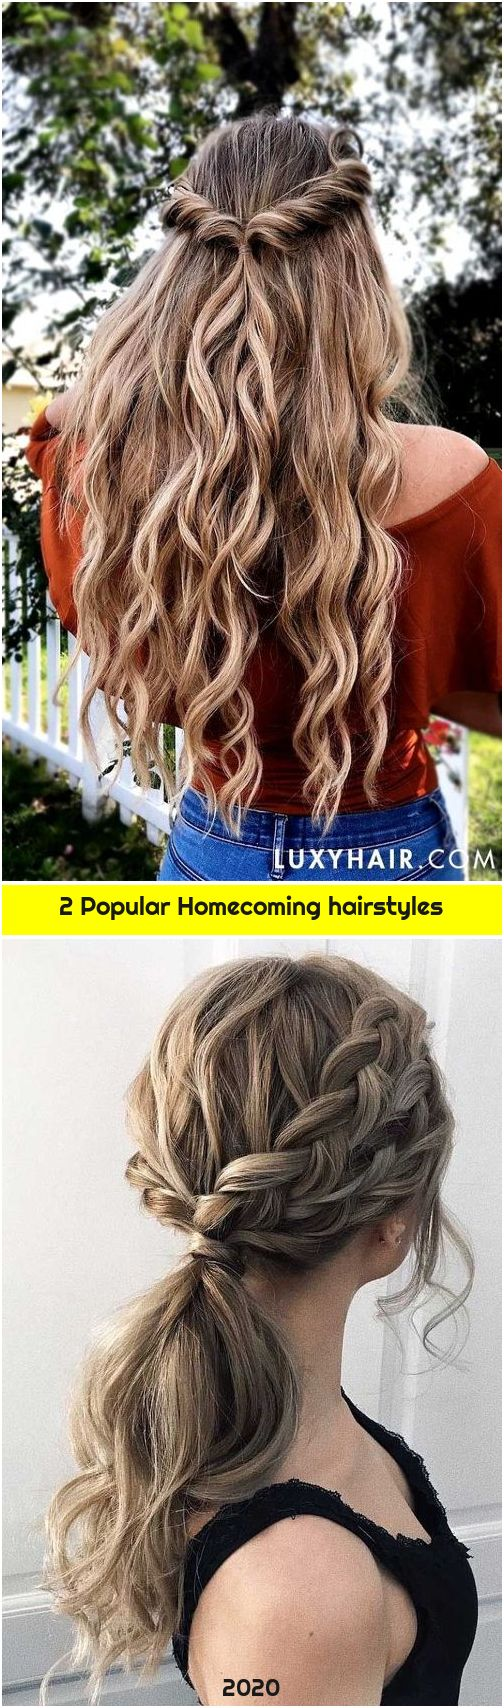 2 Popular Homecoming hairstyles